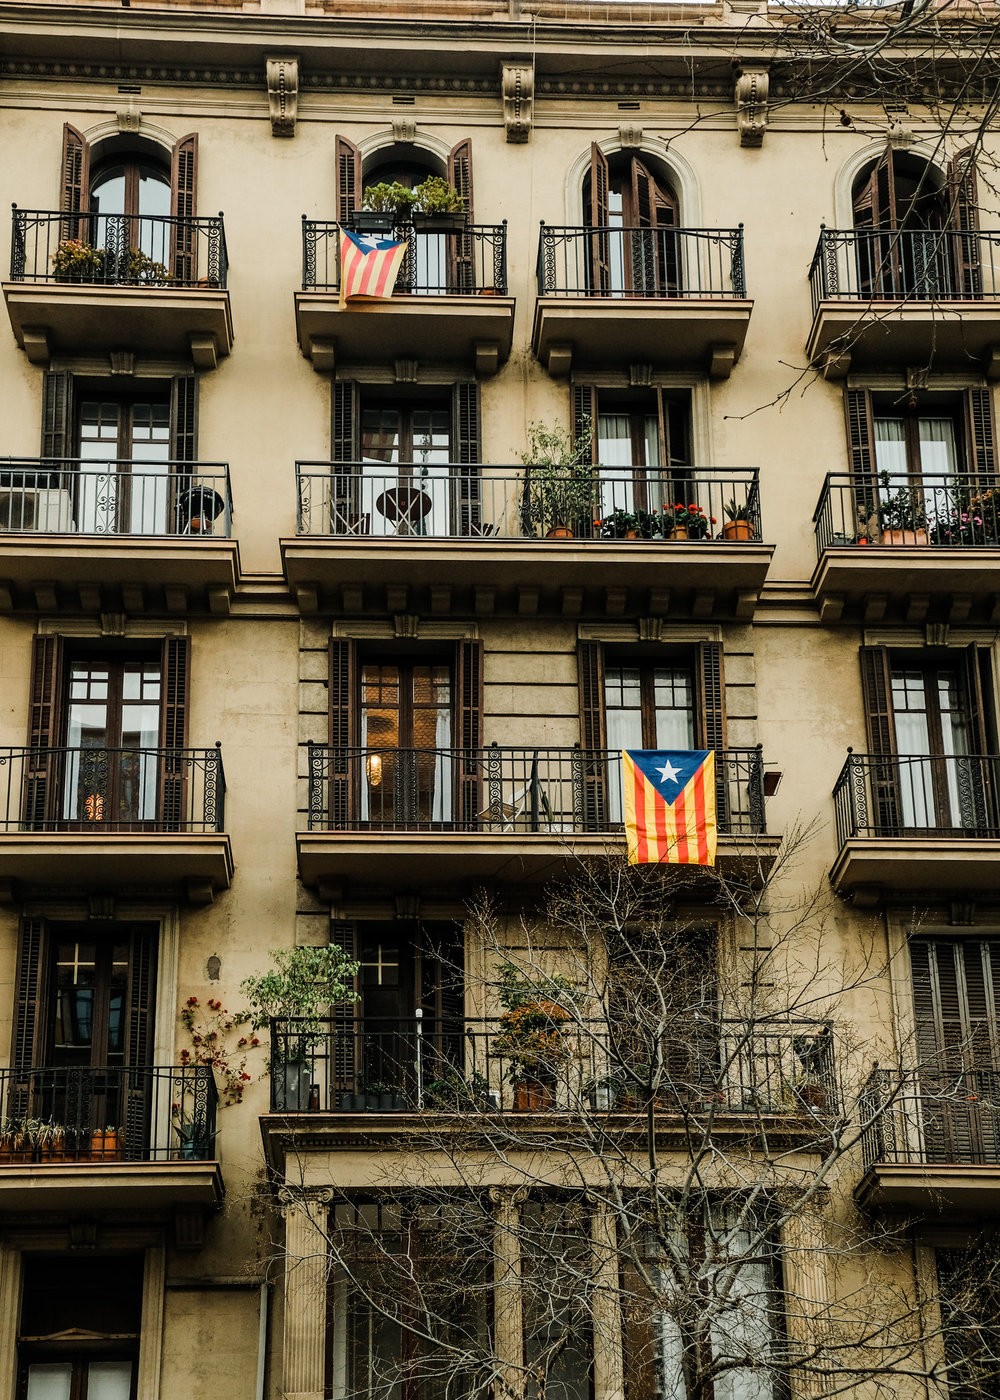 La Estelada Blava, the most popular flag that one will notice on display in Barcelona stands as the symbol of the separatist movement in Catalonia and represents their desire to gain independence from the rest of Spain. In a time as politically turbulent as the present, hanging a flag is the resultant of the human need to identify oneself as a member of a group in terms of political preferences, and to express to the world one's opinion.